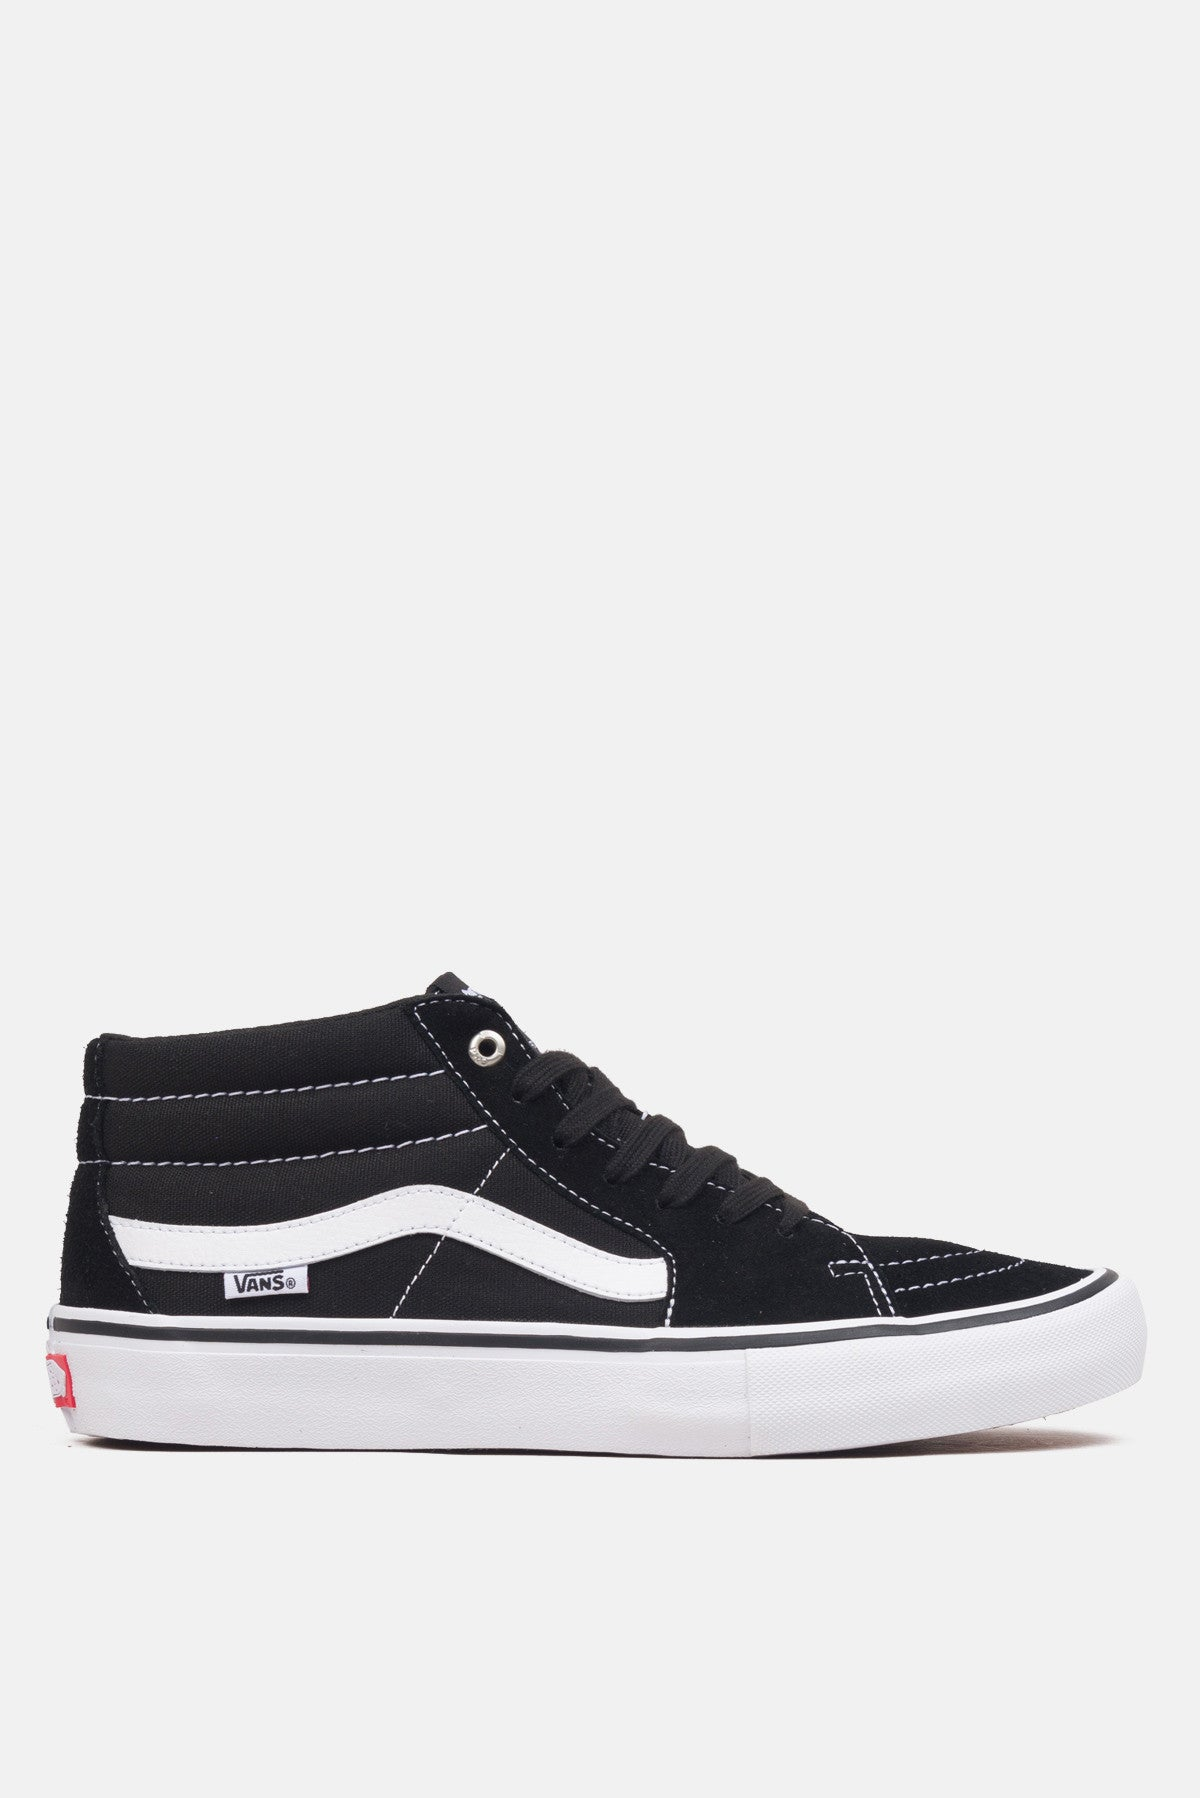 6dff725a17 Vans Sk8 Mid Pro Shoes available from Priory